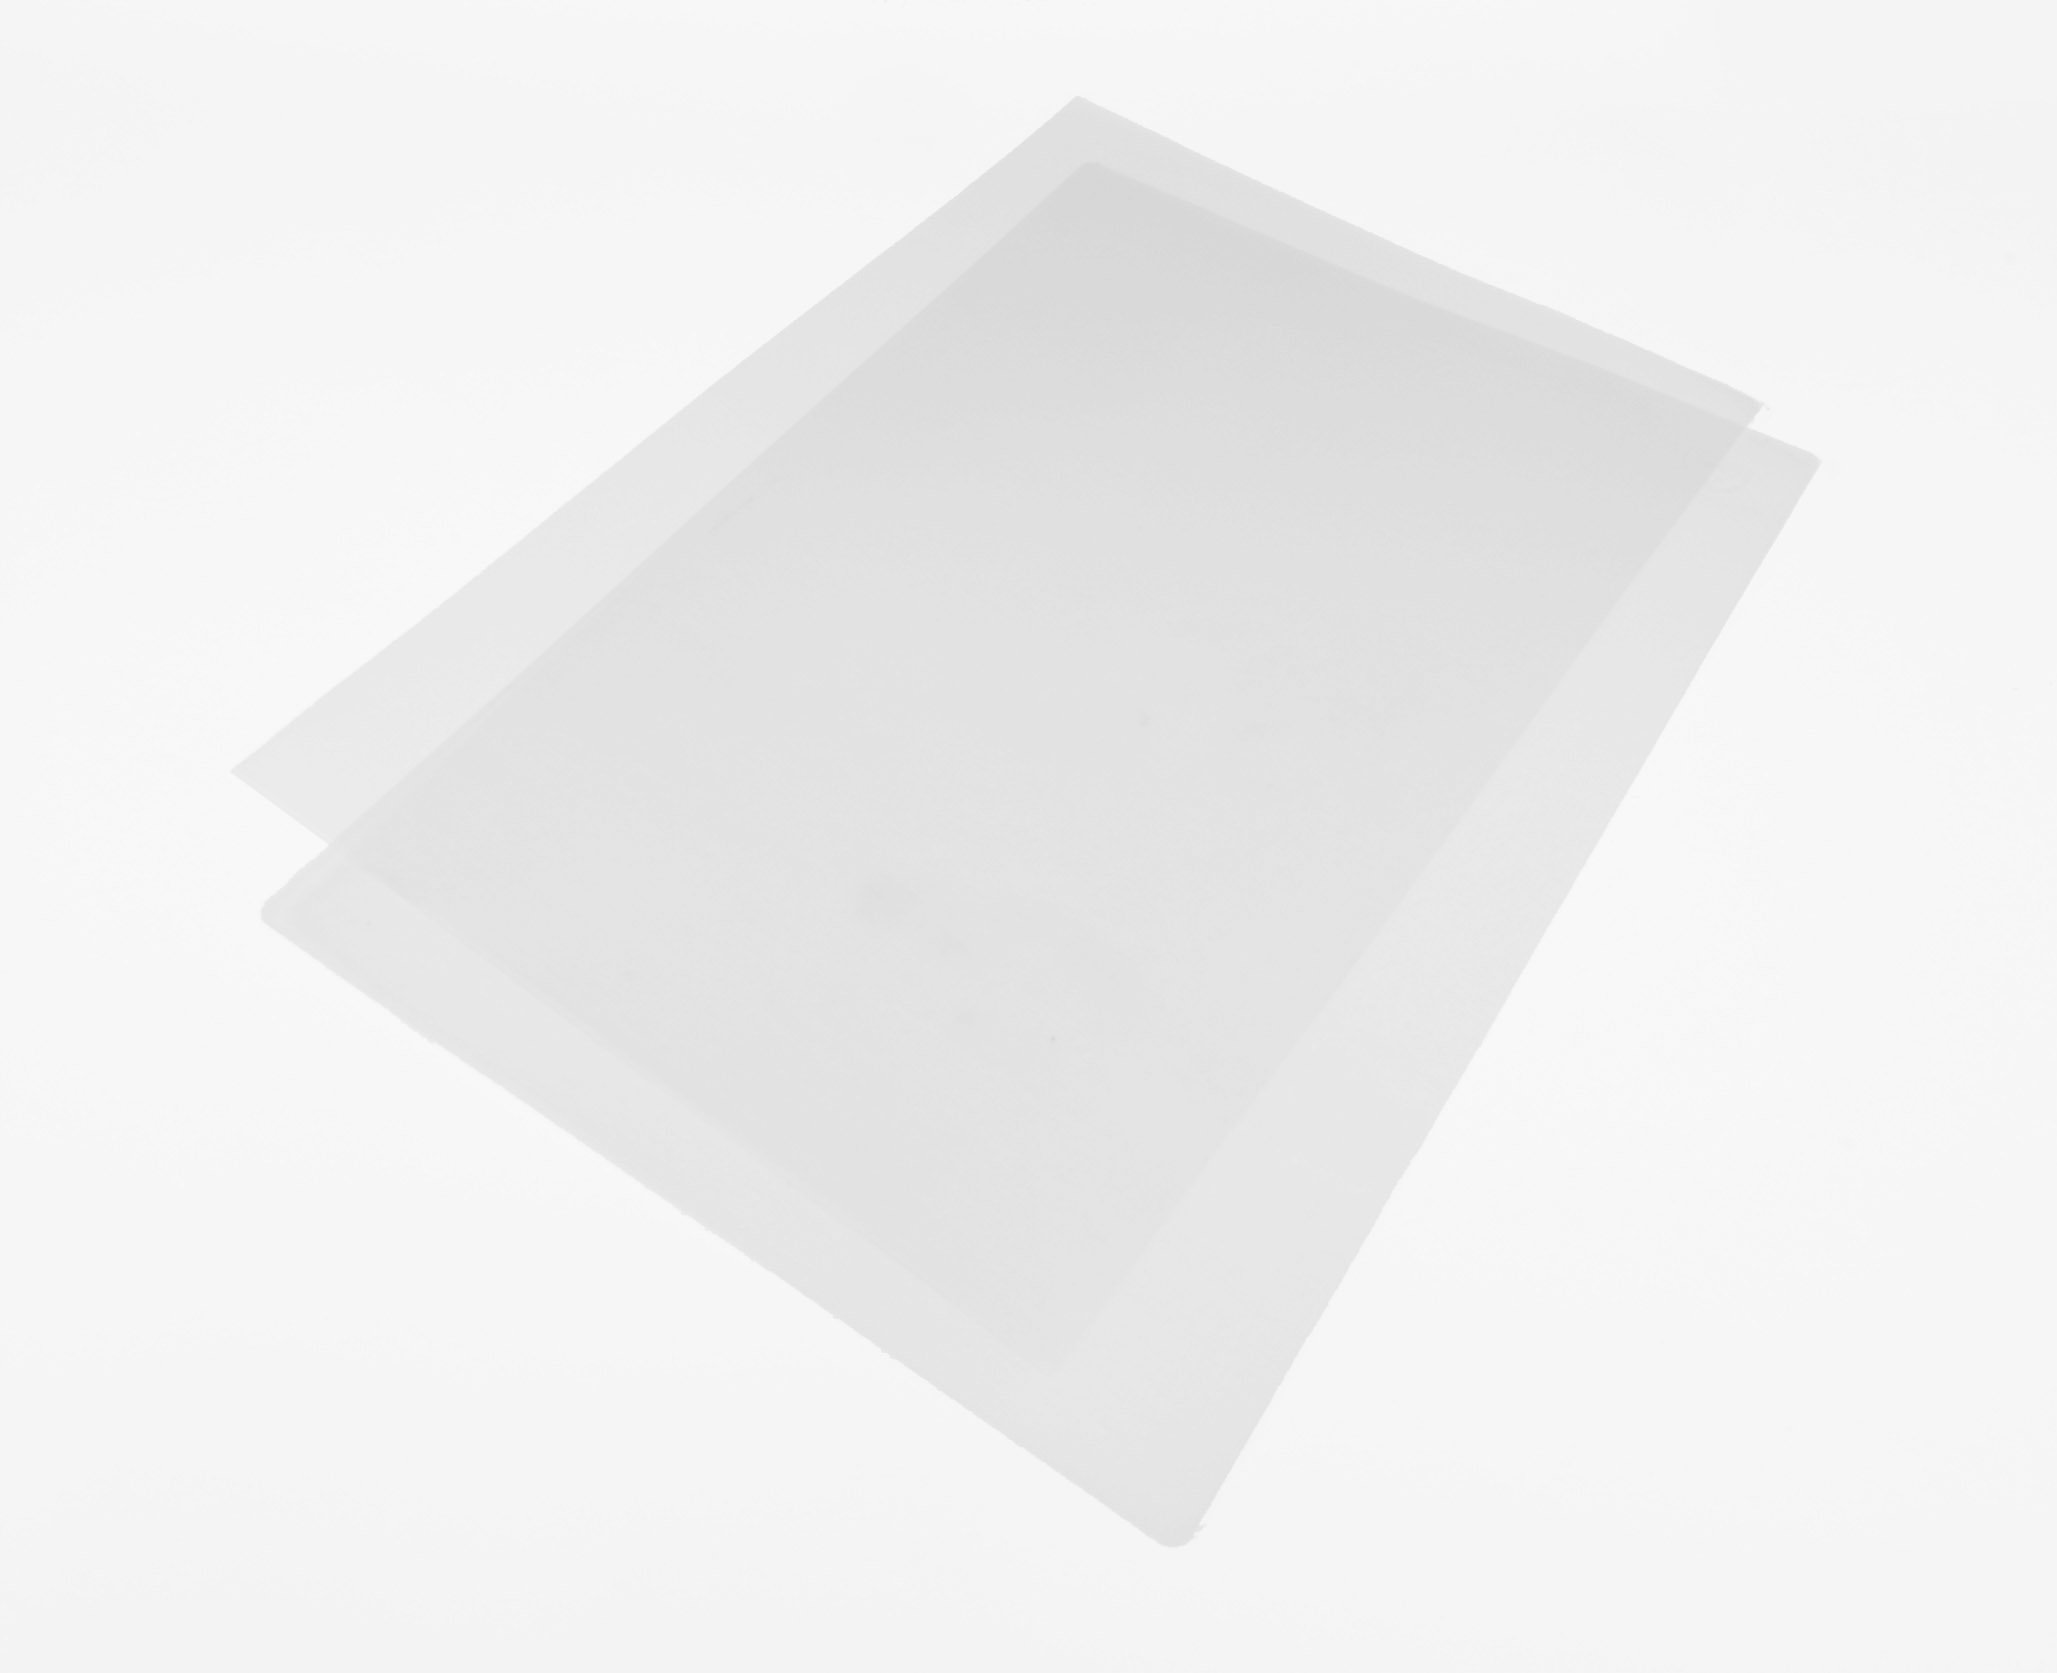 R&R Lotion SD-SHEETS Static Dissipative Laminating Sheet, 11'' Length x 8-1/2'' Width (Pack of 100 Sheets) by R&R Lotion